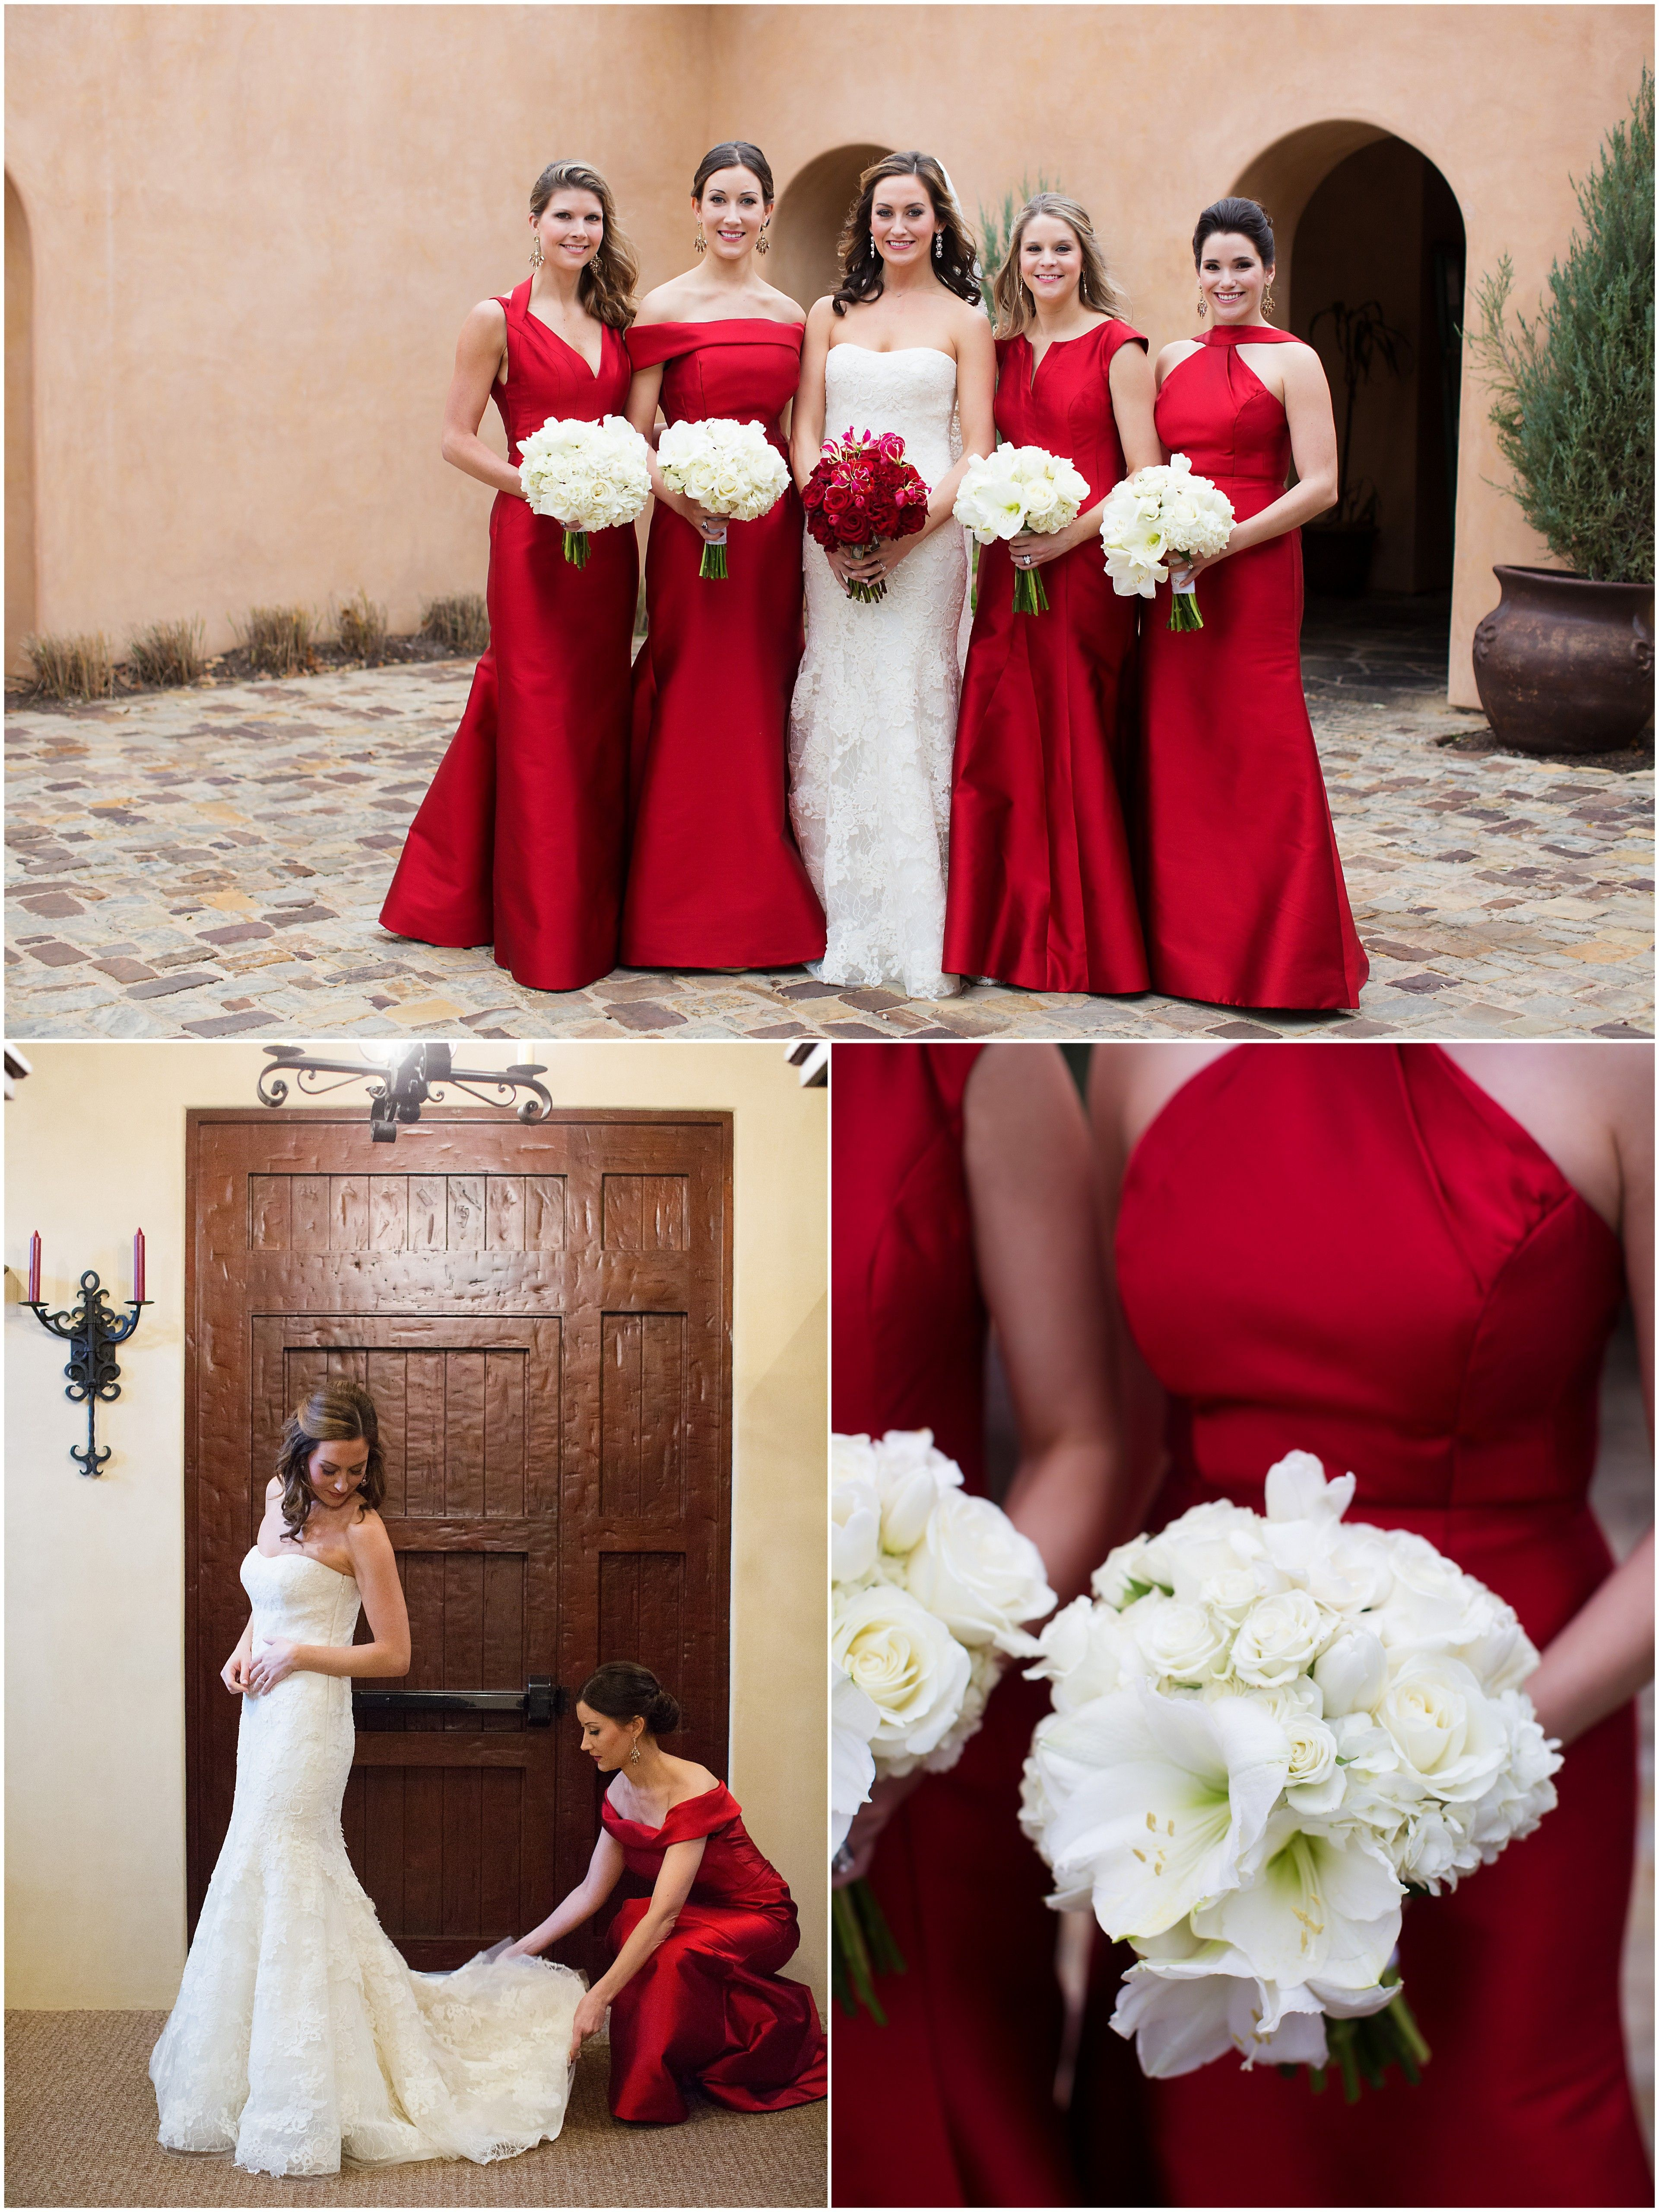 Red Floor Length Gowns For The Bridesmaids Paired With